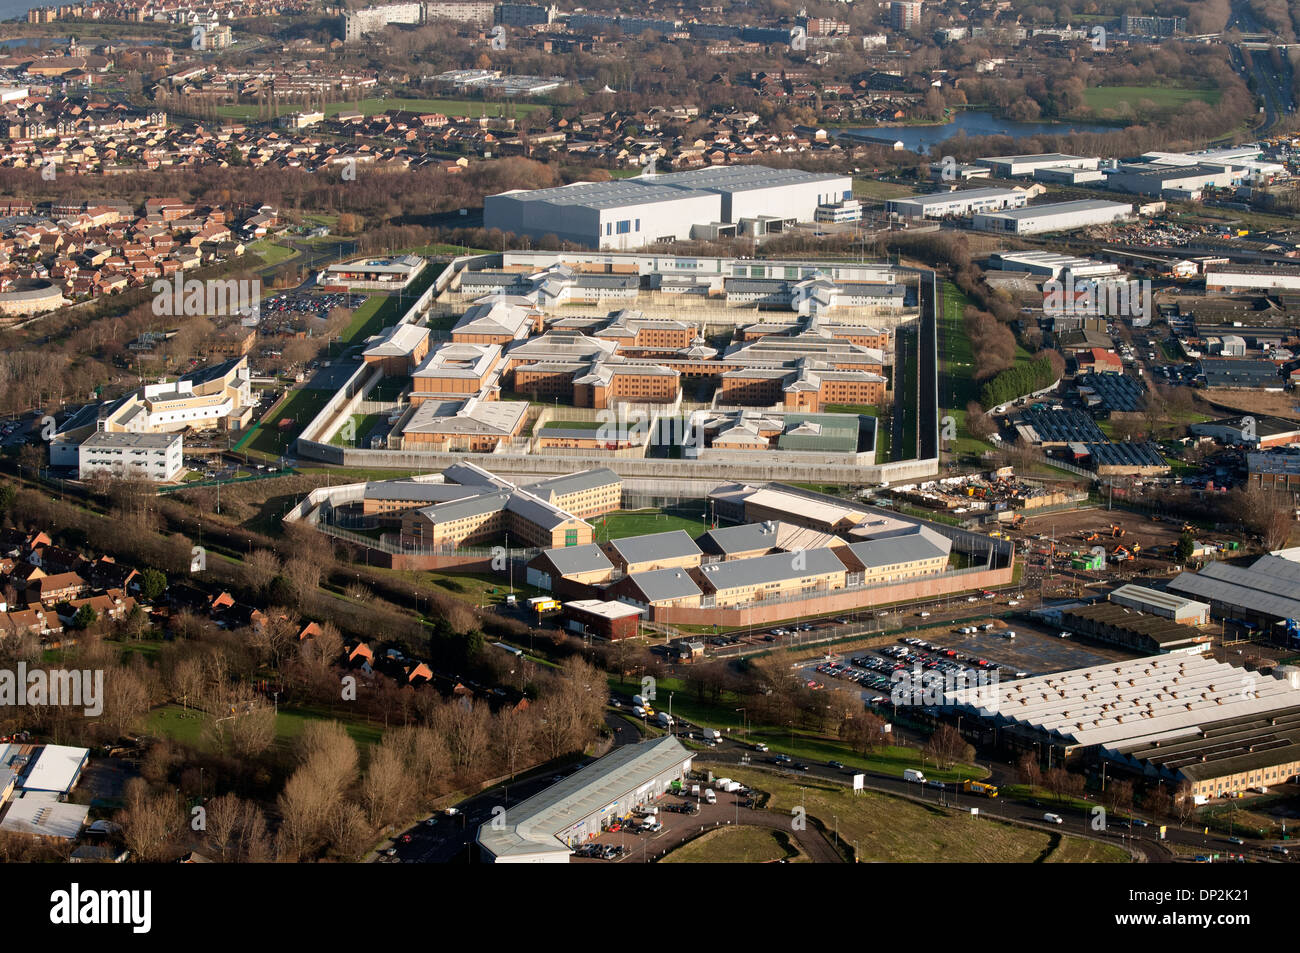 london helicopter centre with Stock Photo Belmarsh High Security Prison In East London As Seen From The Air 65212393 on Kul Scharif Moschee also E094c25f6031618596081d2ae28b57e3 further On Board Aristotle Onassis Floating Palace Christina O Superyacht Goes Sale 21MILLION further Explore Amazing Australia also Stock Photo Belmarsh High Security Prison In East London As Seen From The Air 65212393.